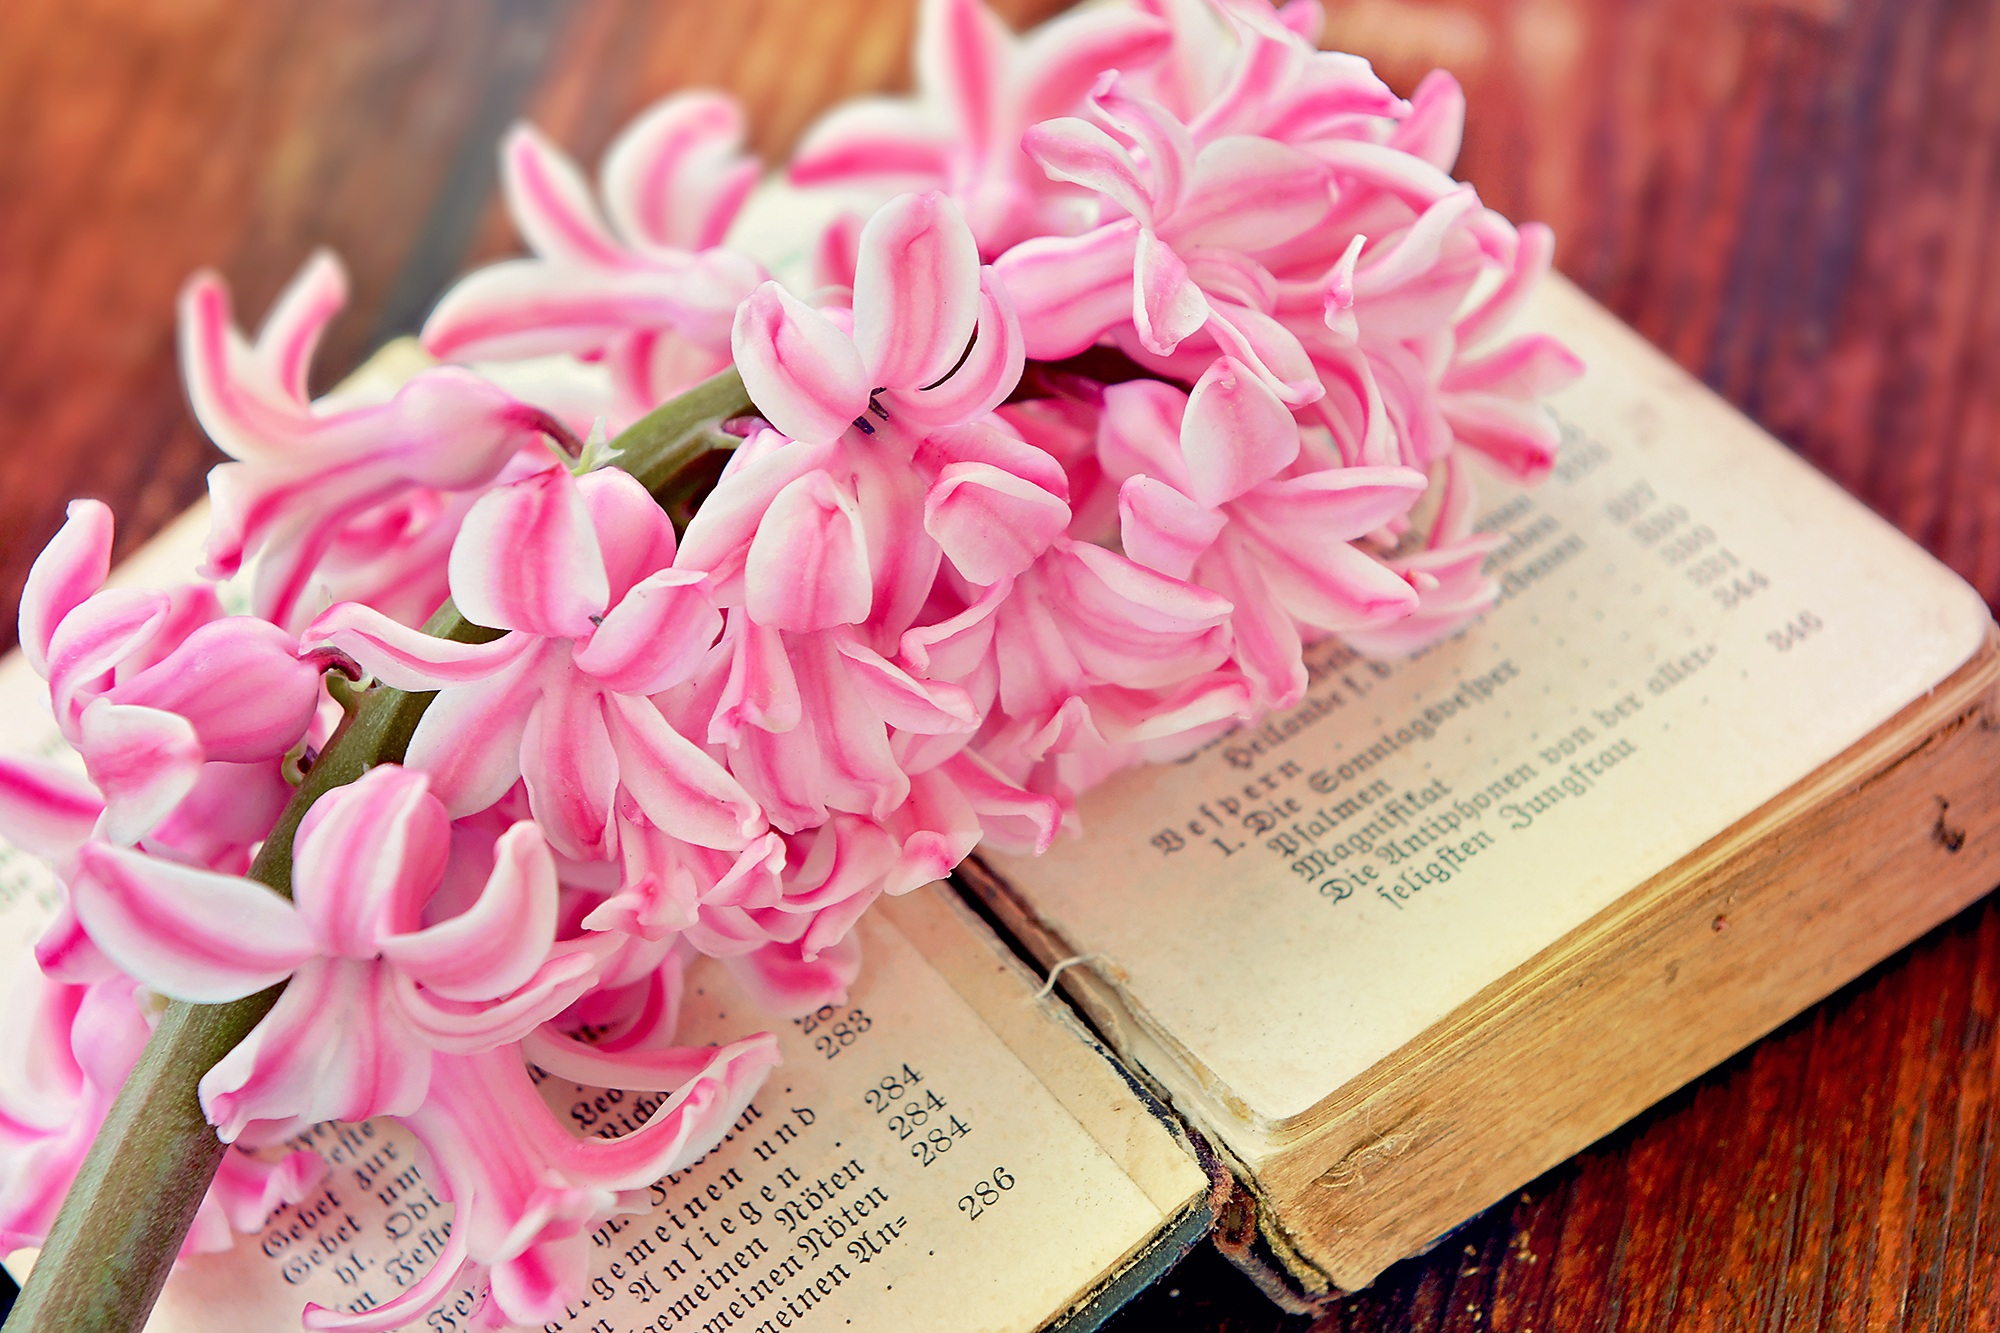 Hyacinth, Bloom, Blooming, Book, Flower, HQ Photo